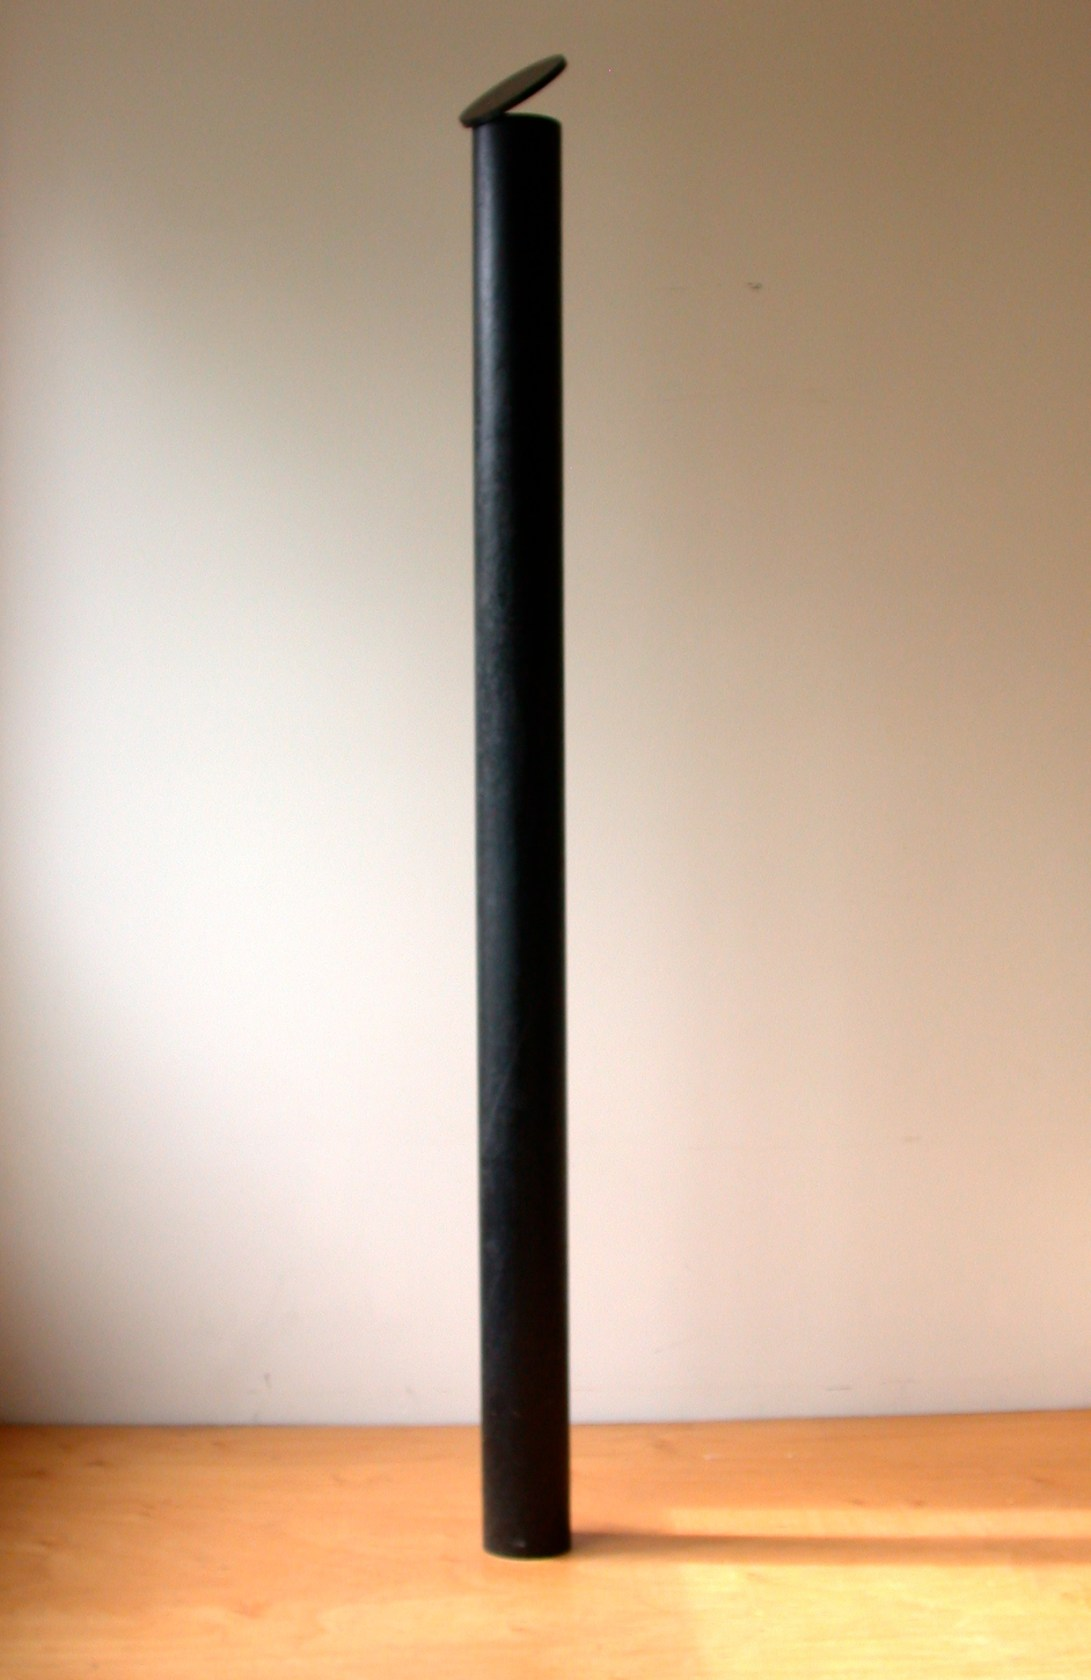 Sculpture 9, Untitled (Stack), 2004